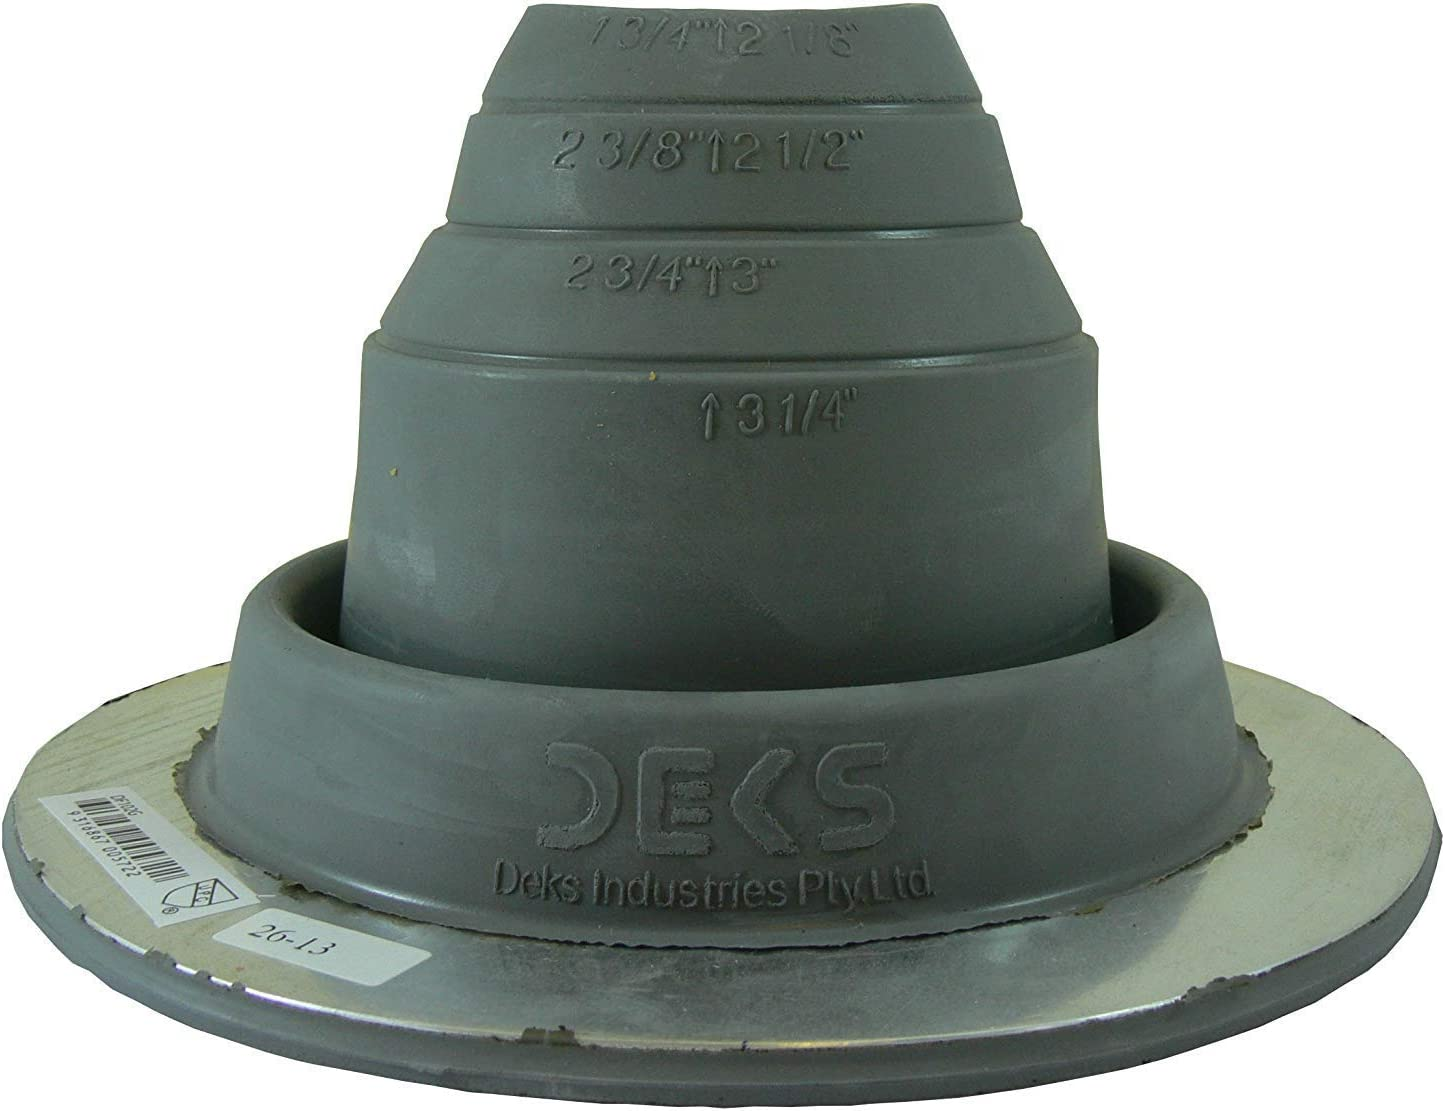 High Temp Red//Gray On Site Adjustable Roof Pipe Jack Boot with Round Base - EAGLE 1 EPDM Flexible Roofing Pipe Flashing Boots Standard - Zipper, 2